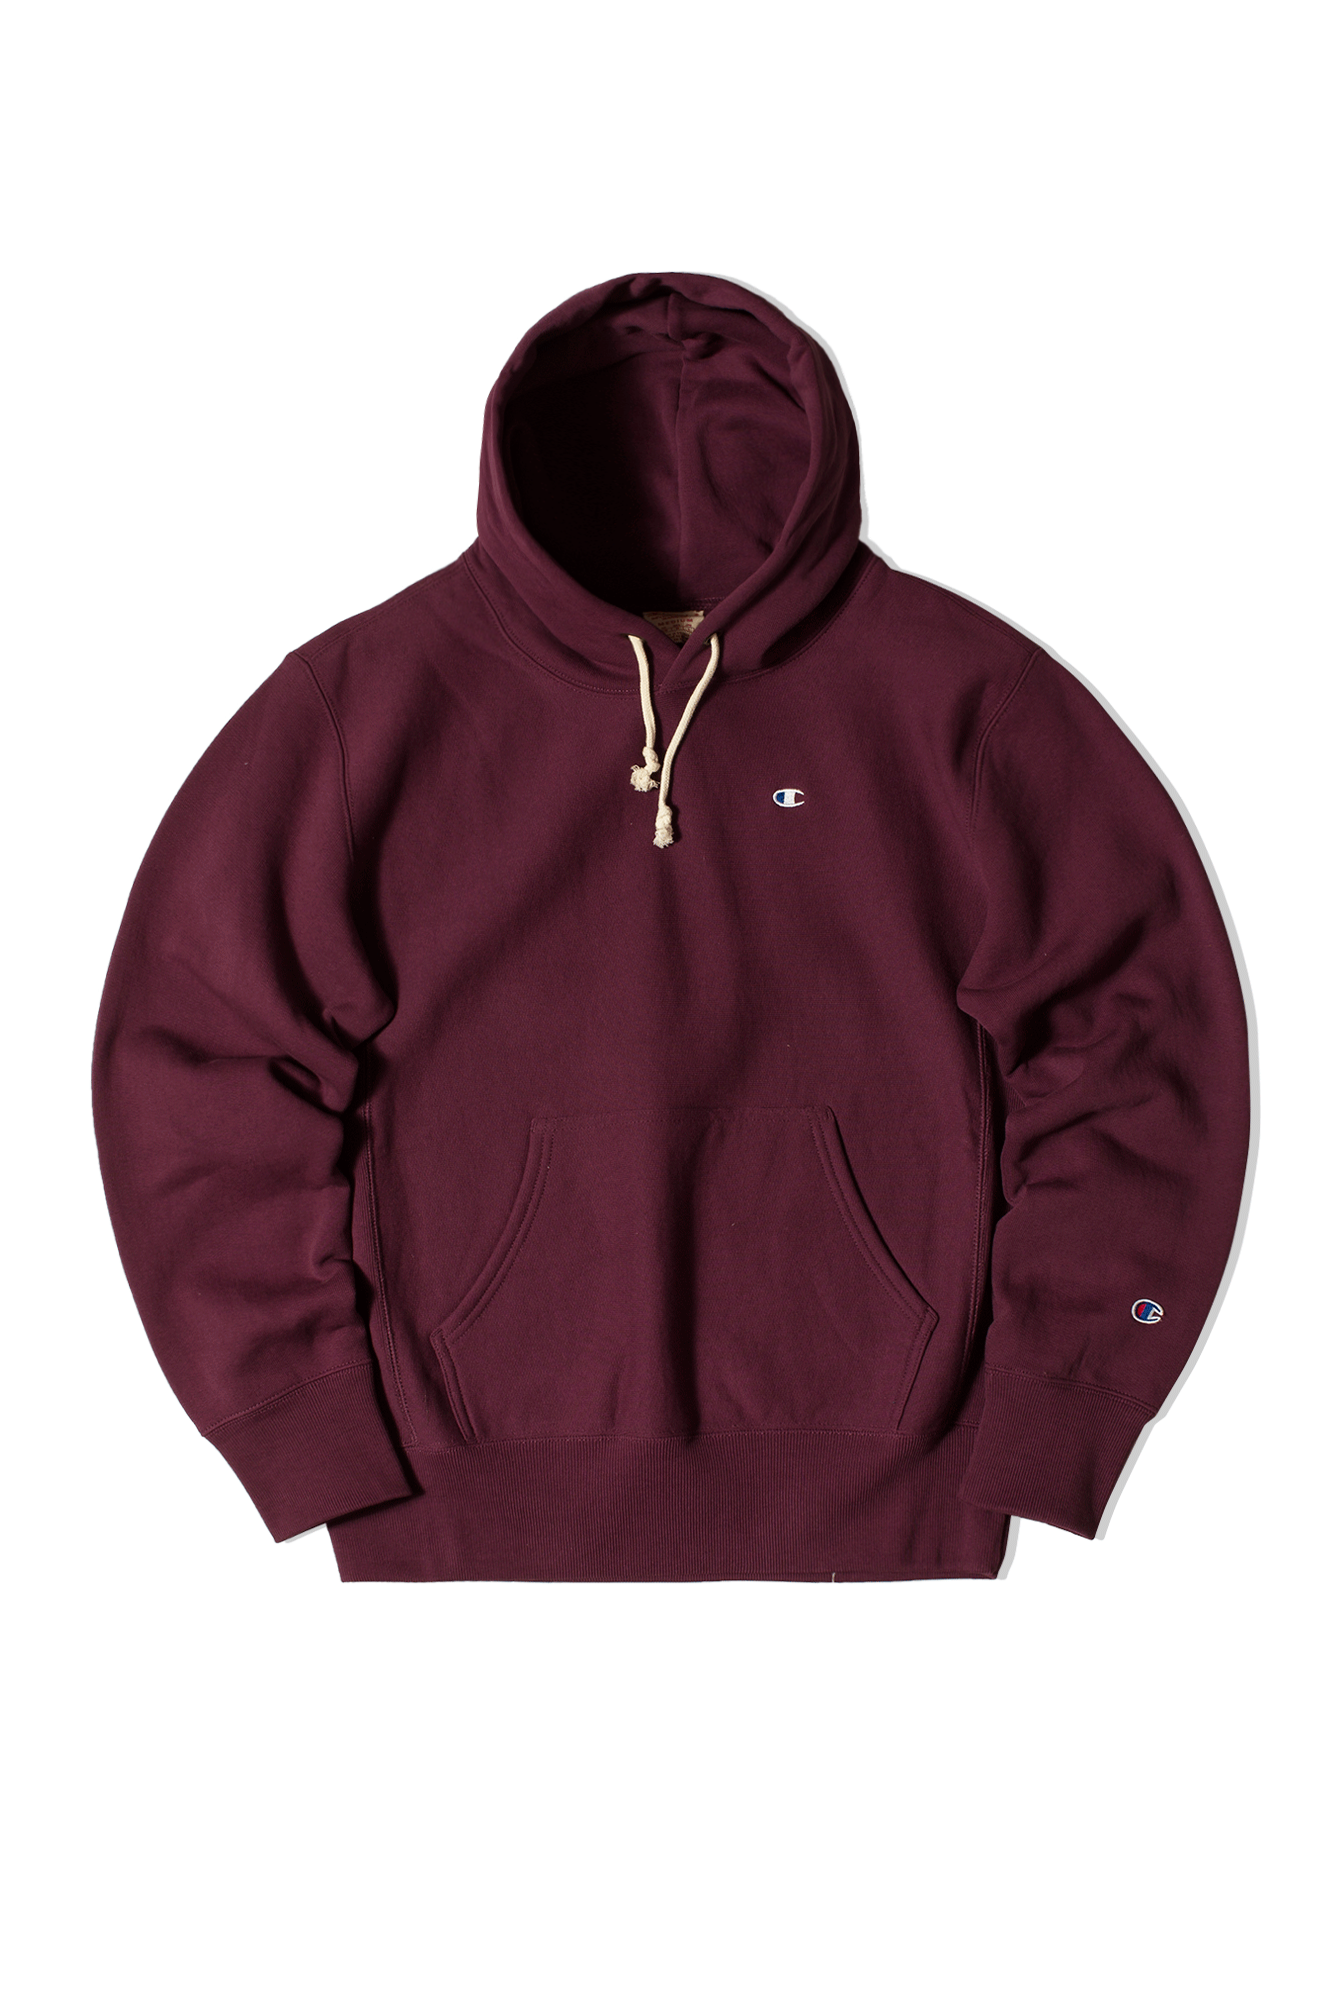 Hooded sweatshirt Purple